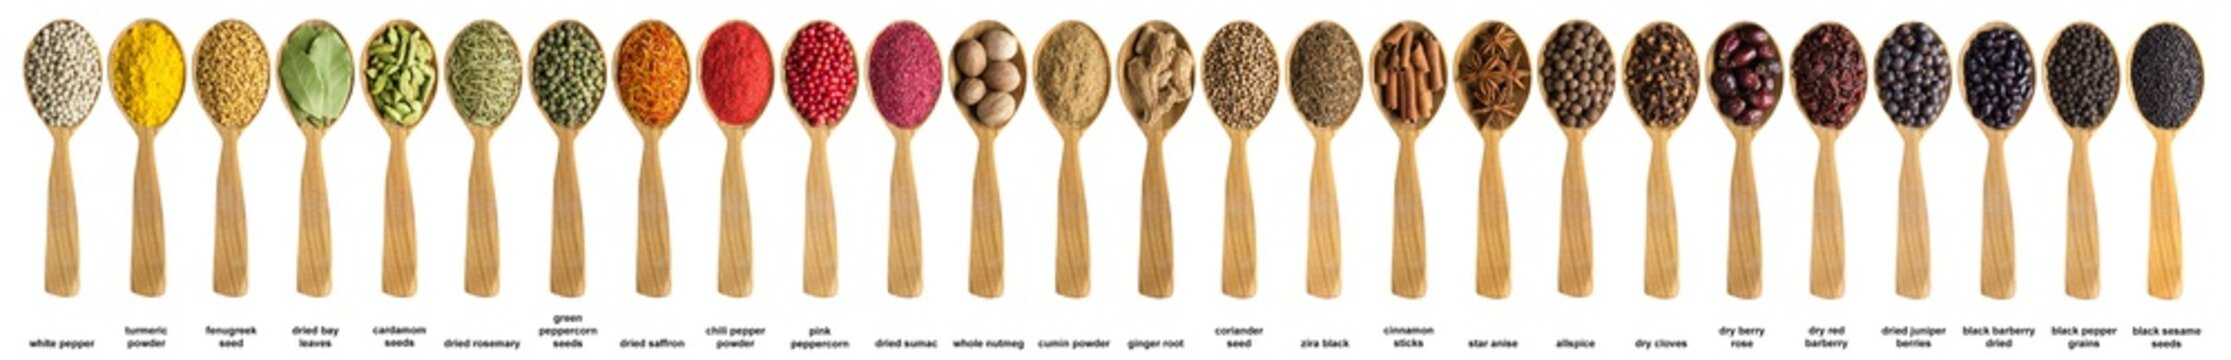 Various spices and herbs poured into a wooden spoon. Seasonings for food isolated on white background.